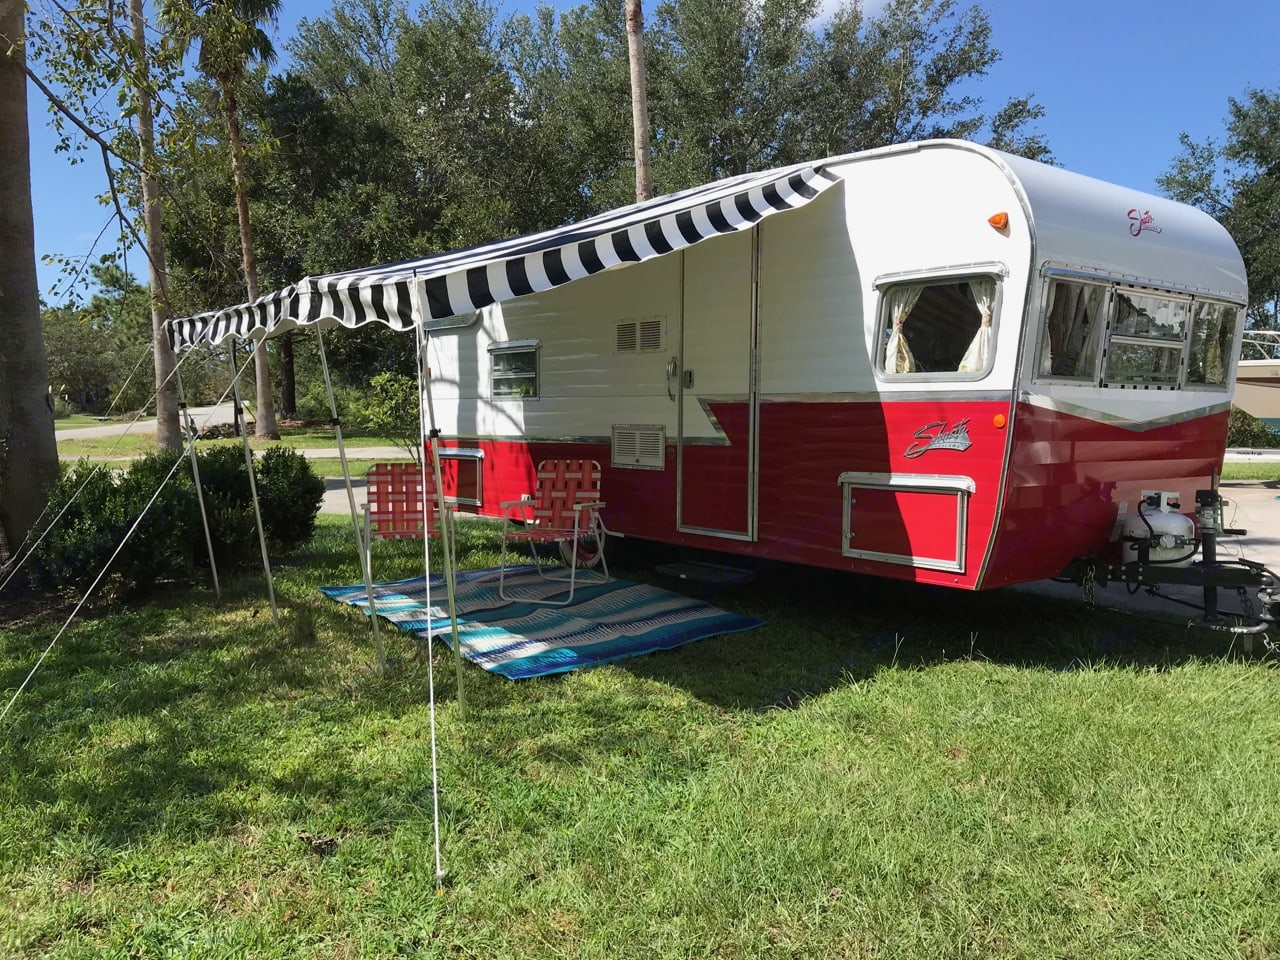 2016 Shasta Airflyte with awning deployed. Ready for camping. . Shasta Airflyte 2016